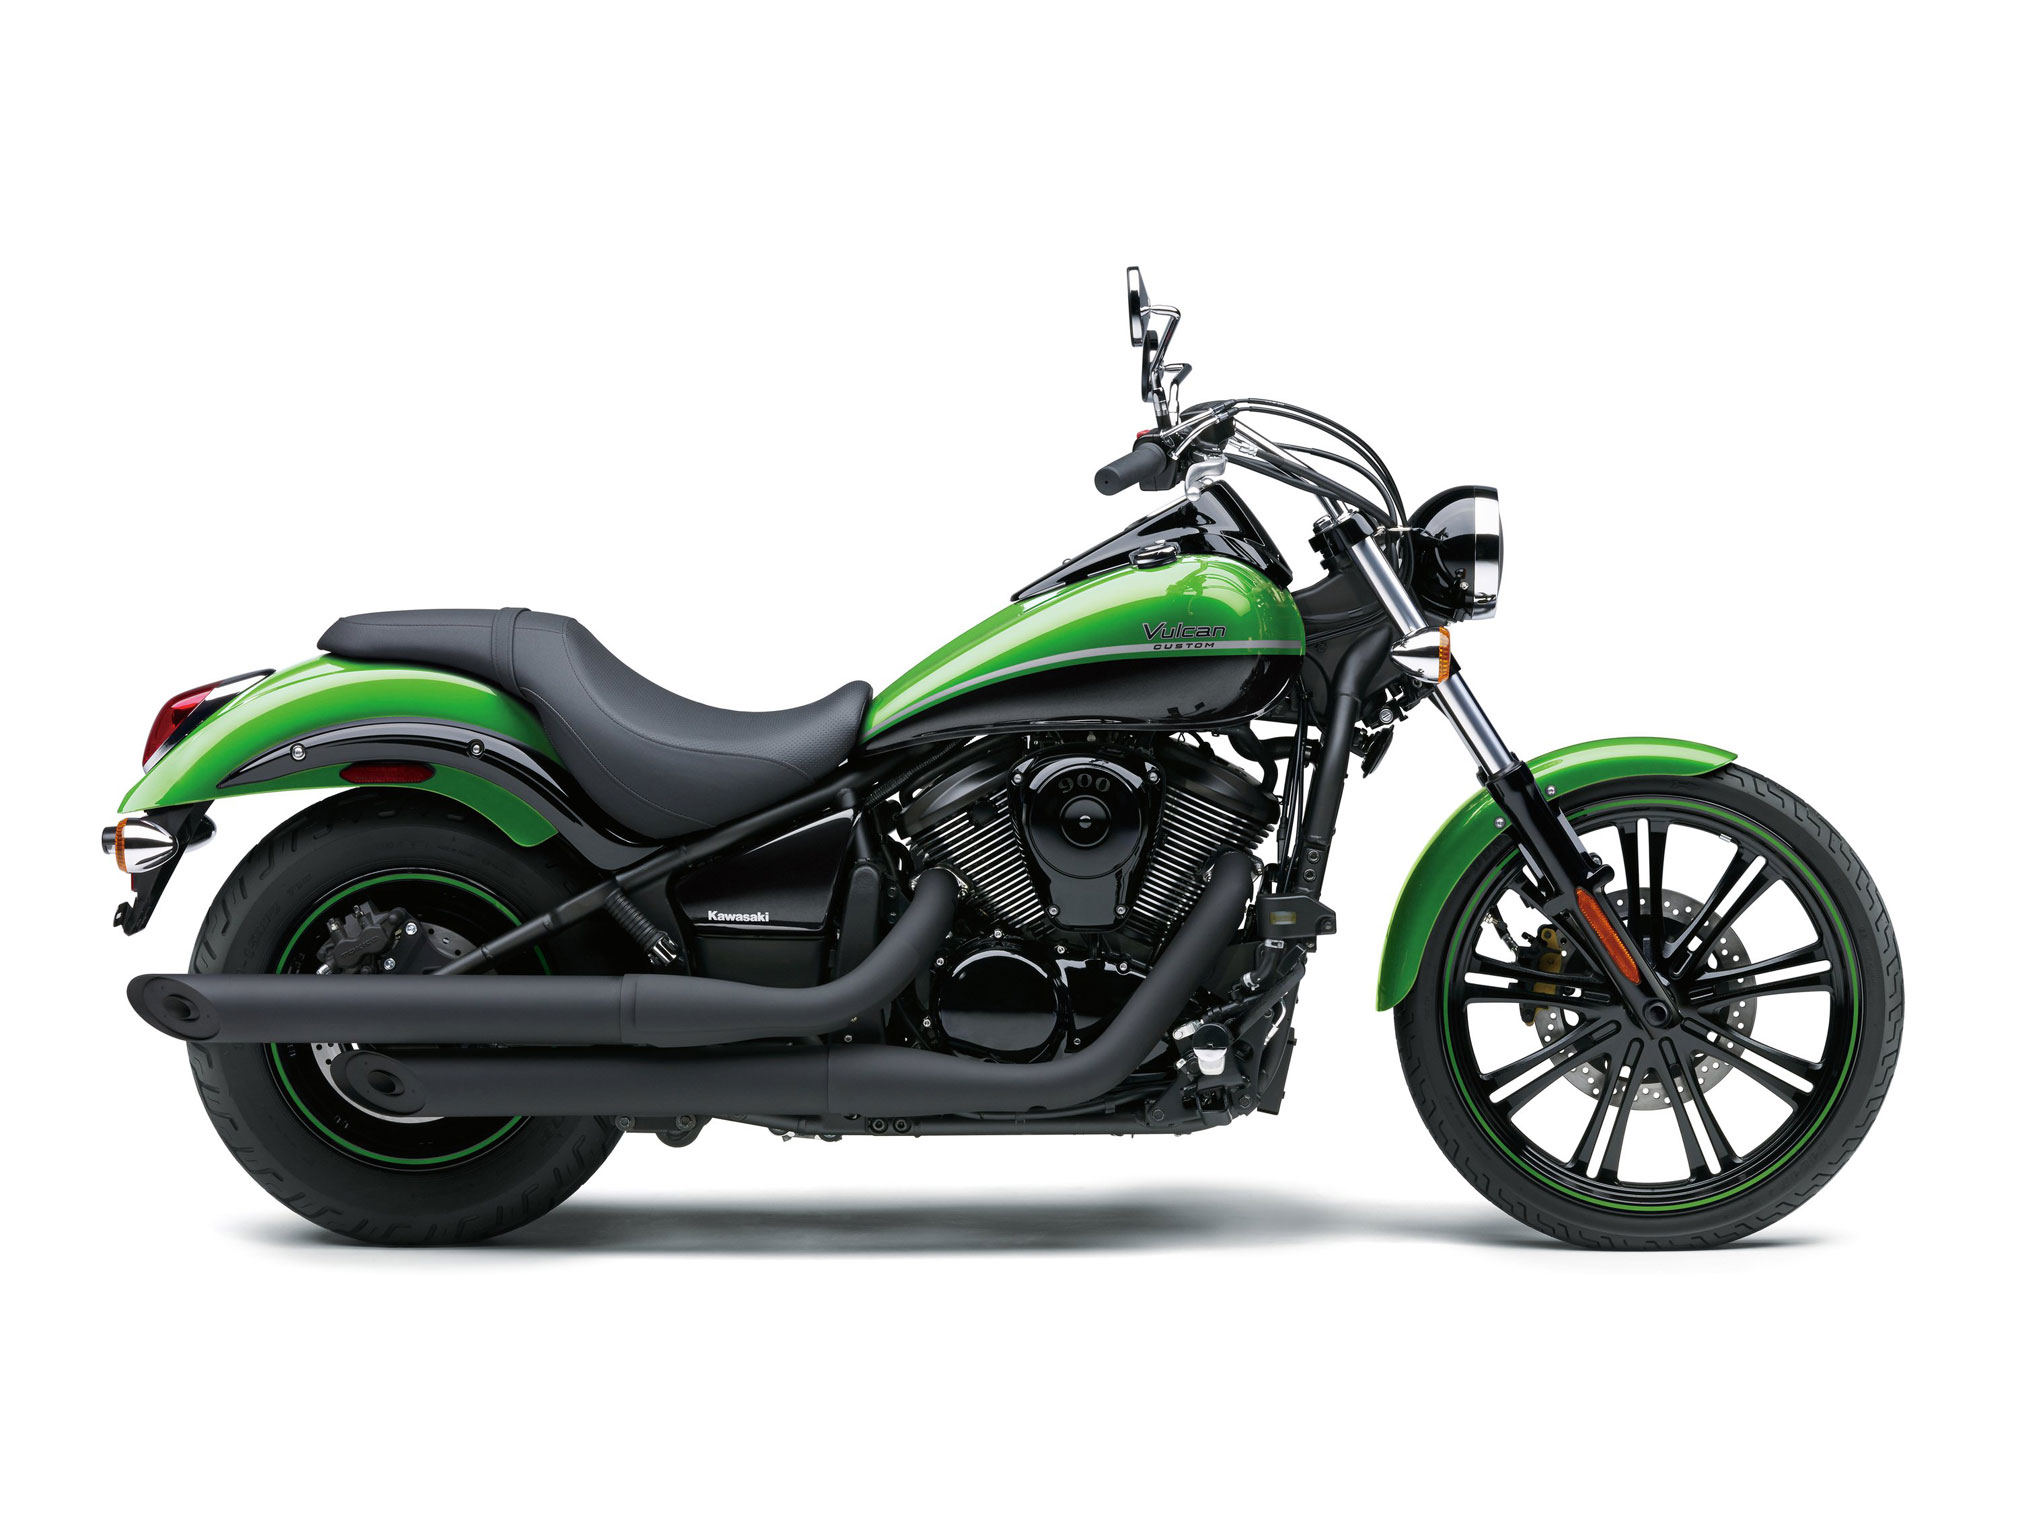 2018 kawasaki vulcan 900 custom review total motorcycle. Black Bedroom Furniture Sets. Home Design Ideas